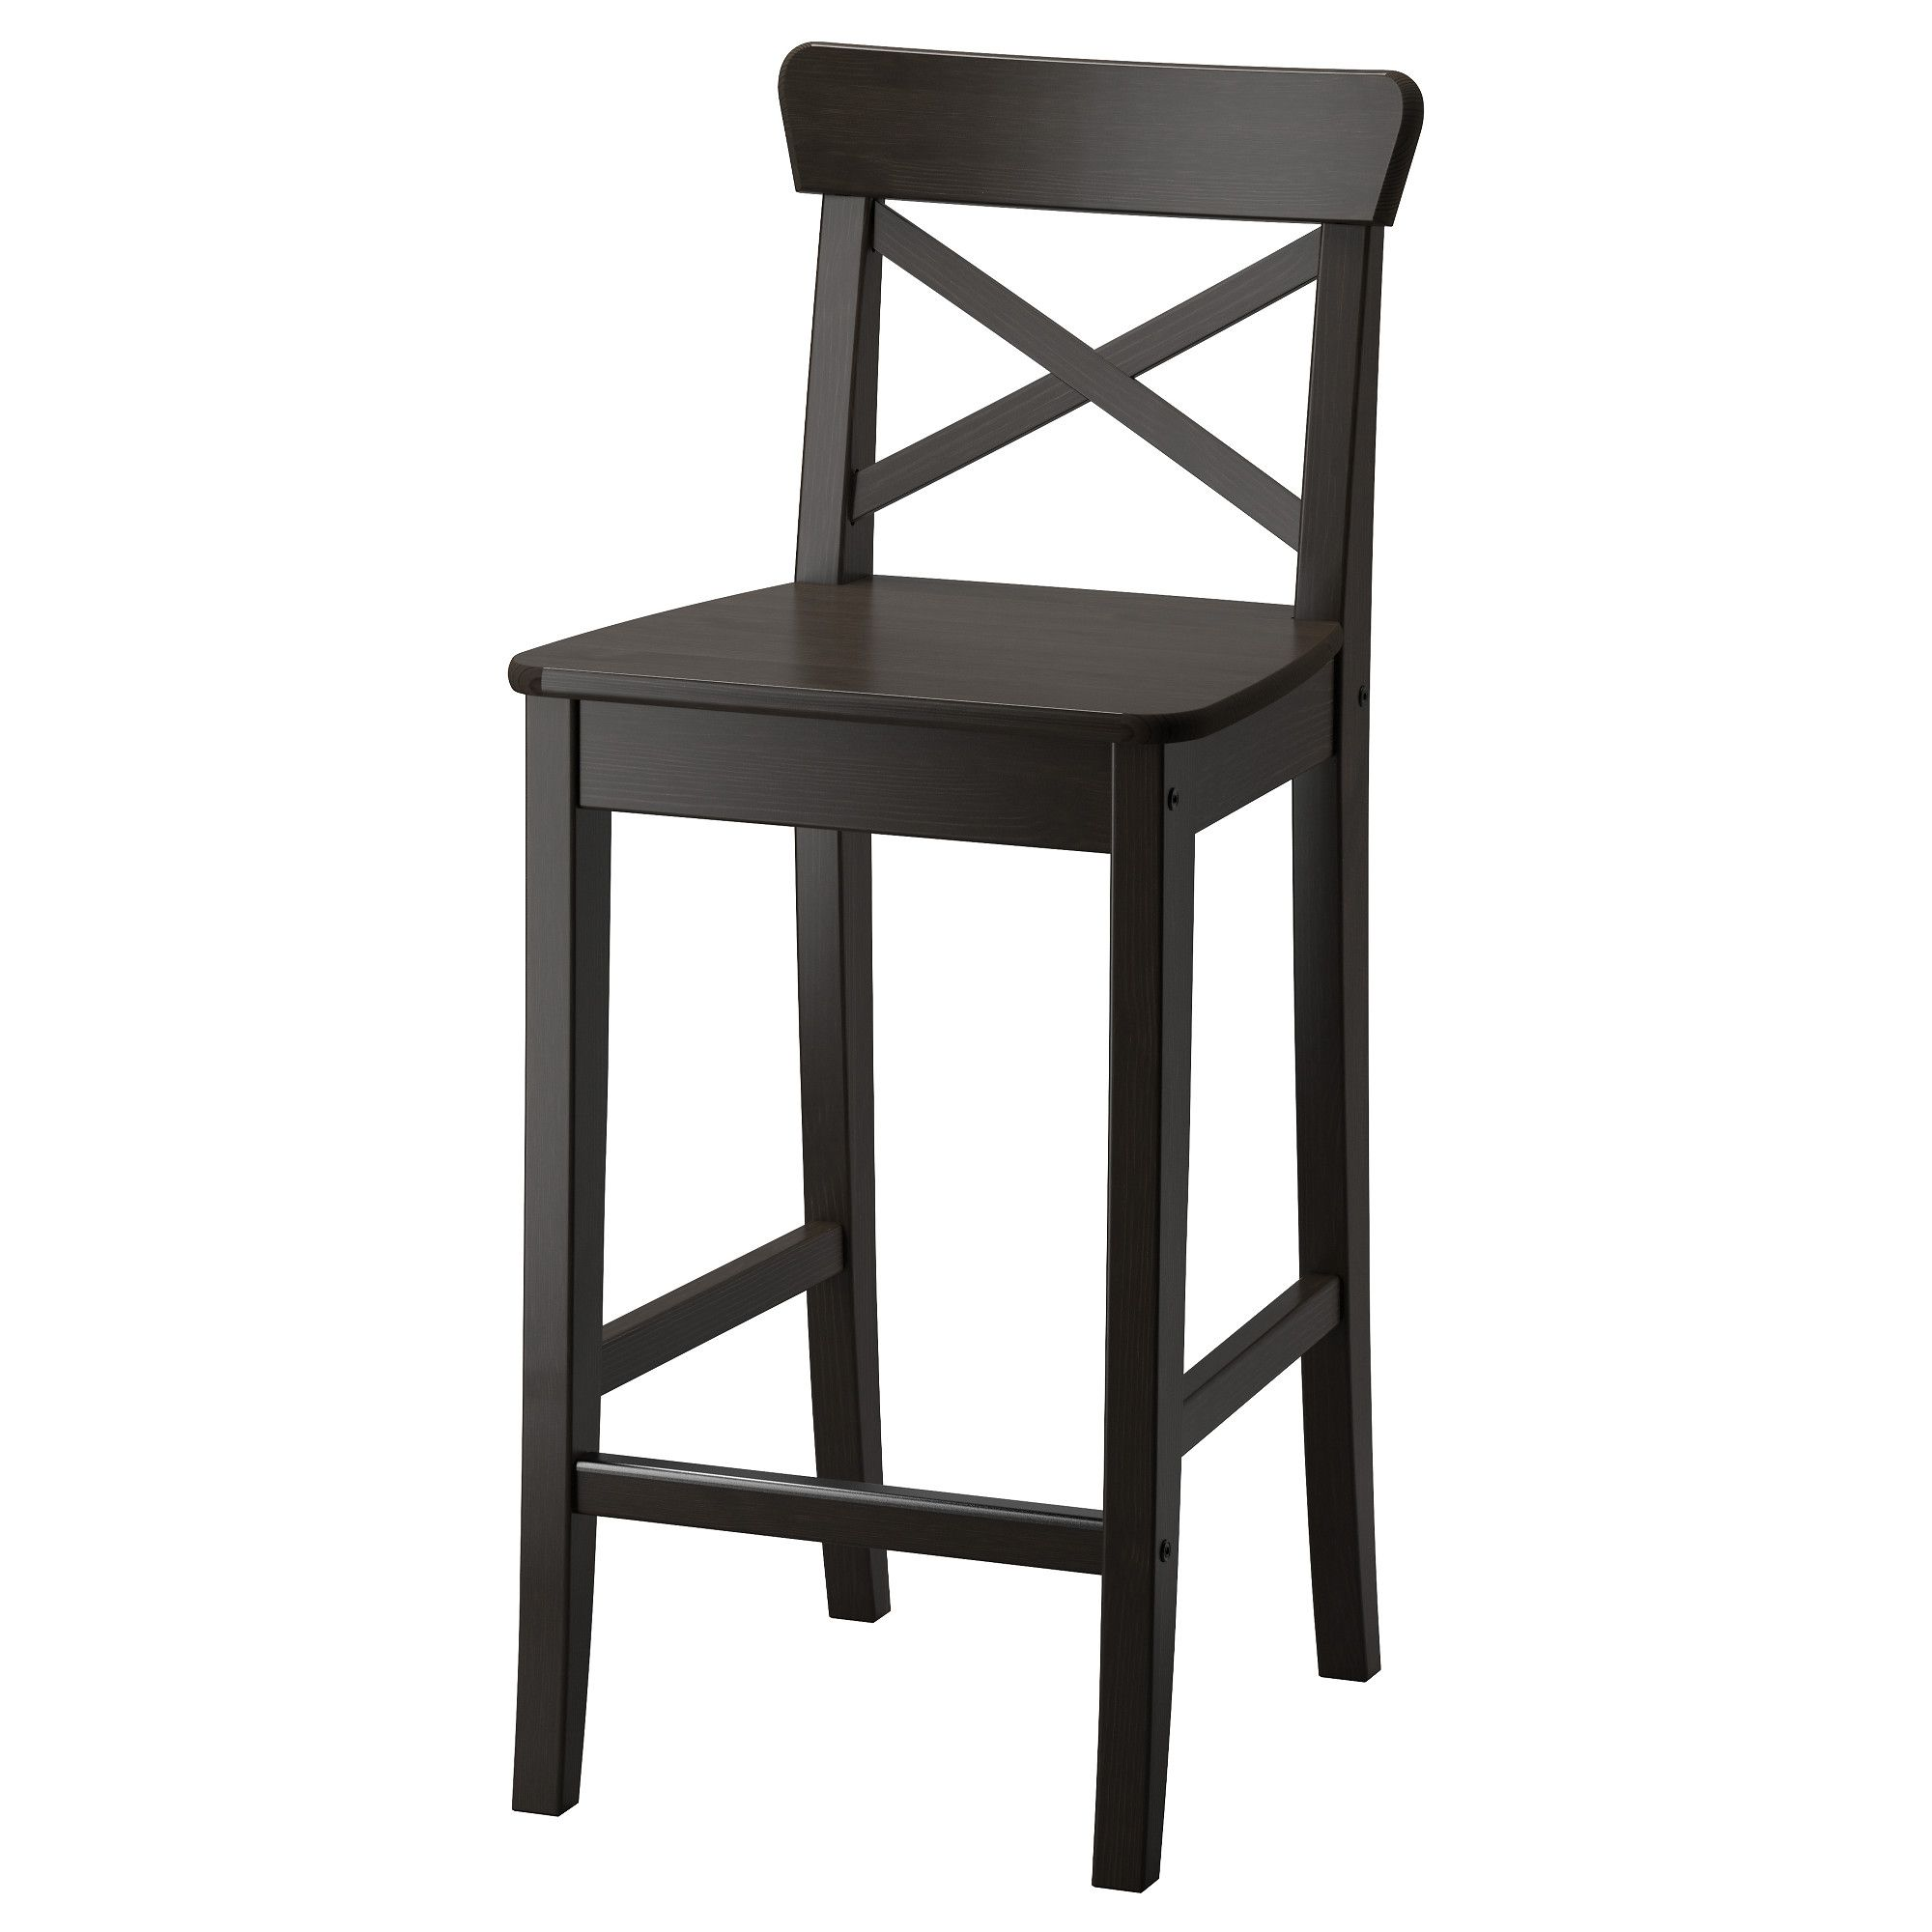 Ikea Ingolf Bar Stool With Backrest Footrest For Extra Sitting Comfort Solid Wood Is A Durable Natural Material